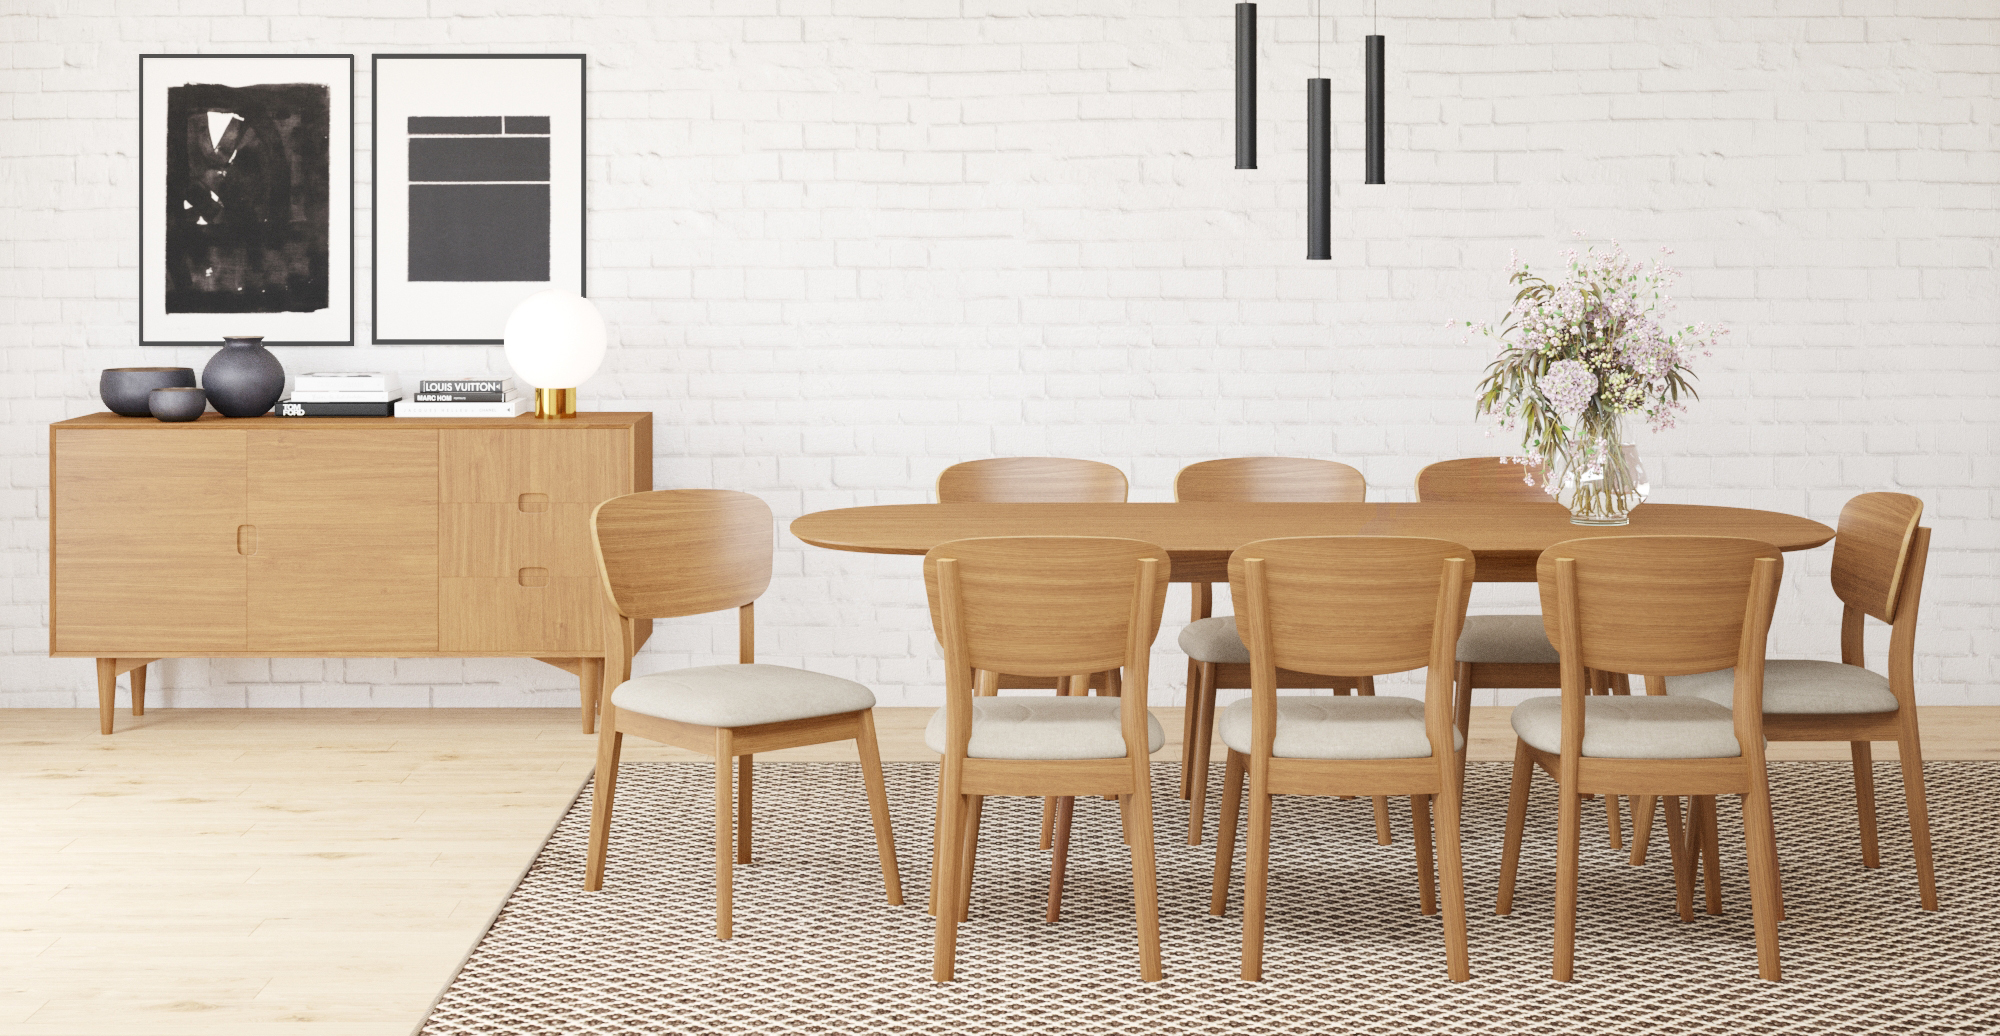 Brosa Mia Extendable Dining Table styled in Scandinavian dining room